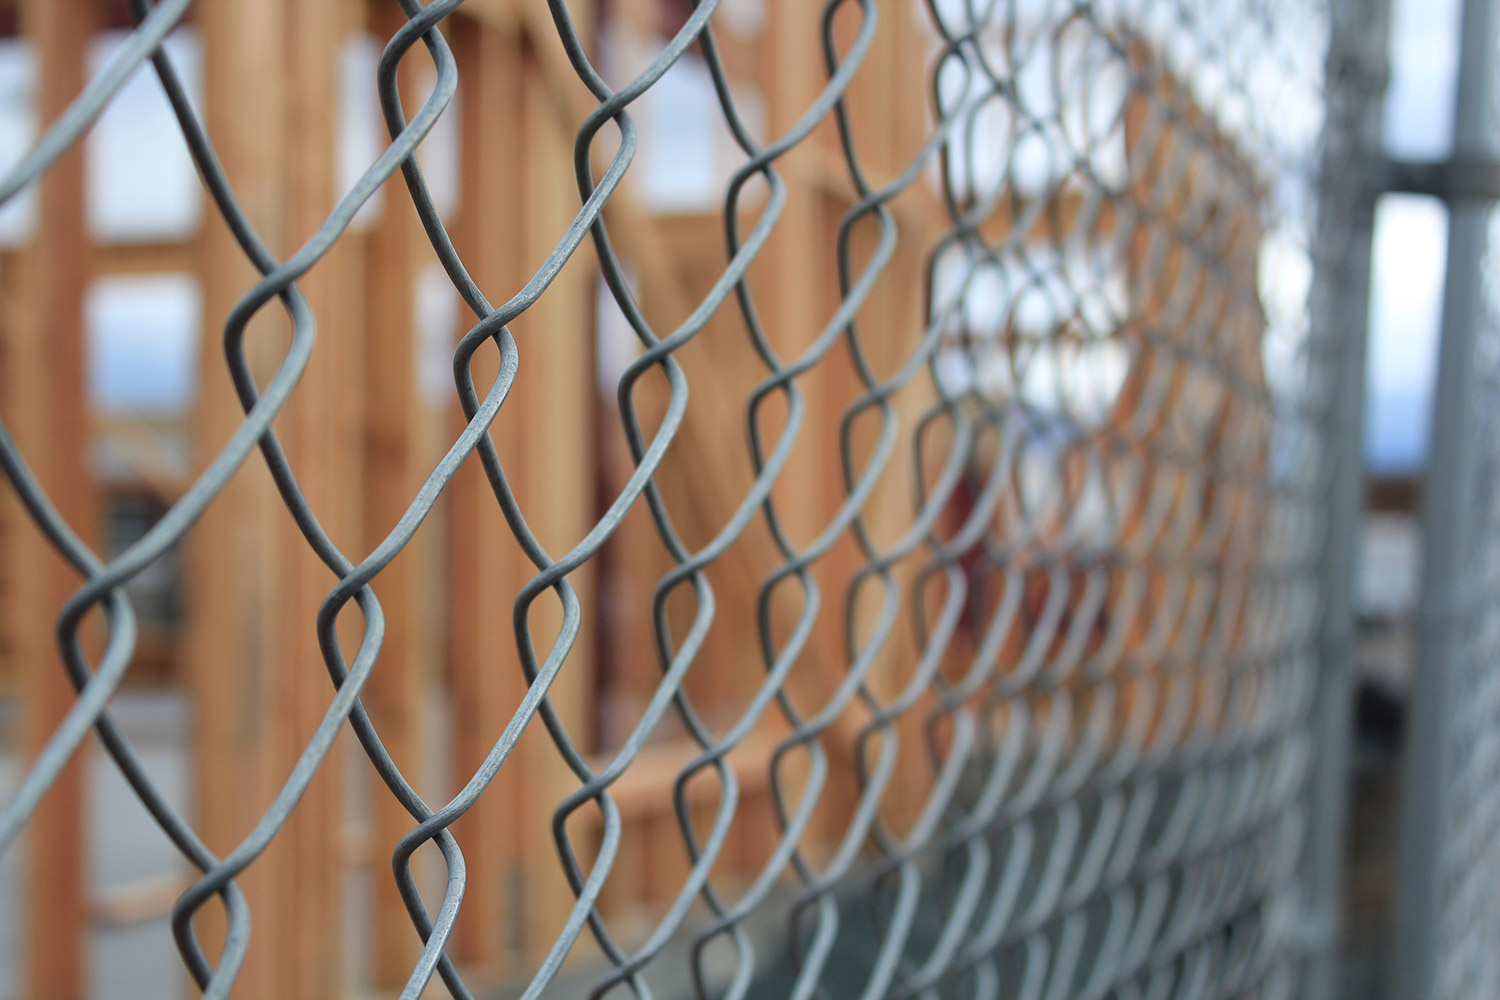 Red Fox Fence chain link fence